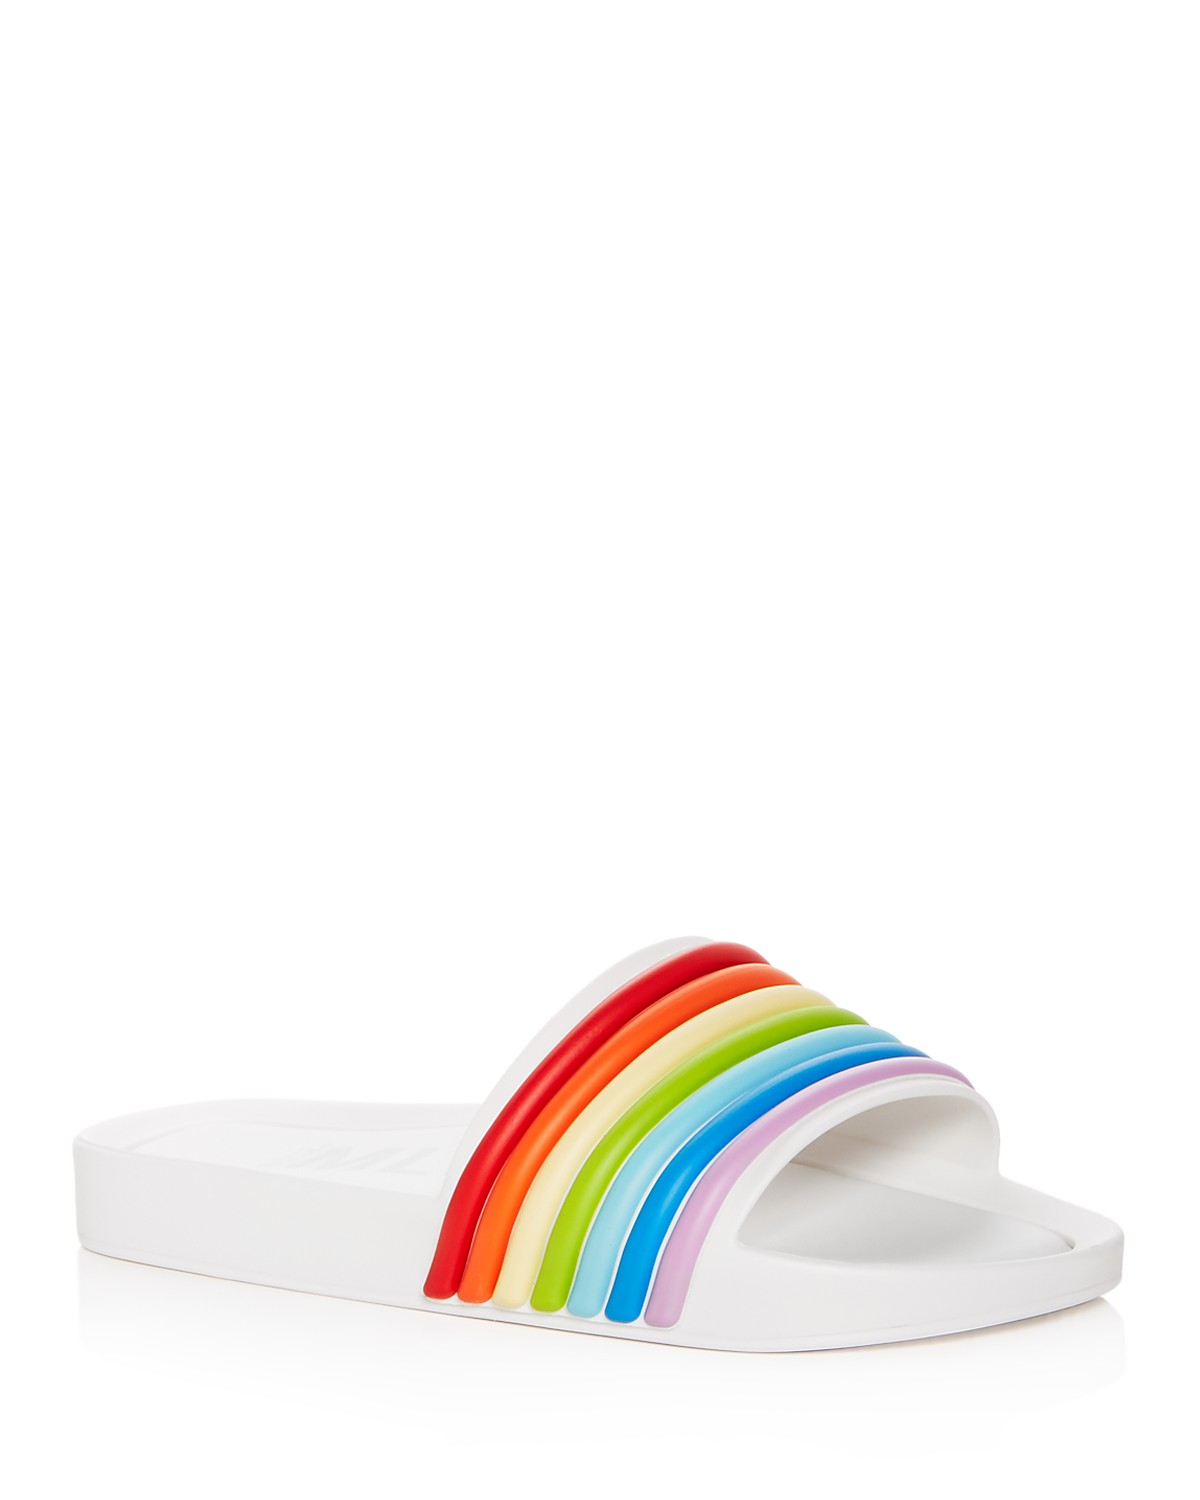 melissa rainbow pool slides